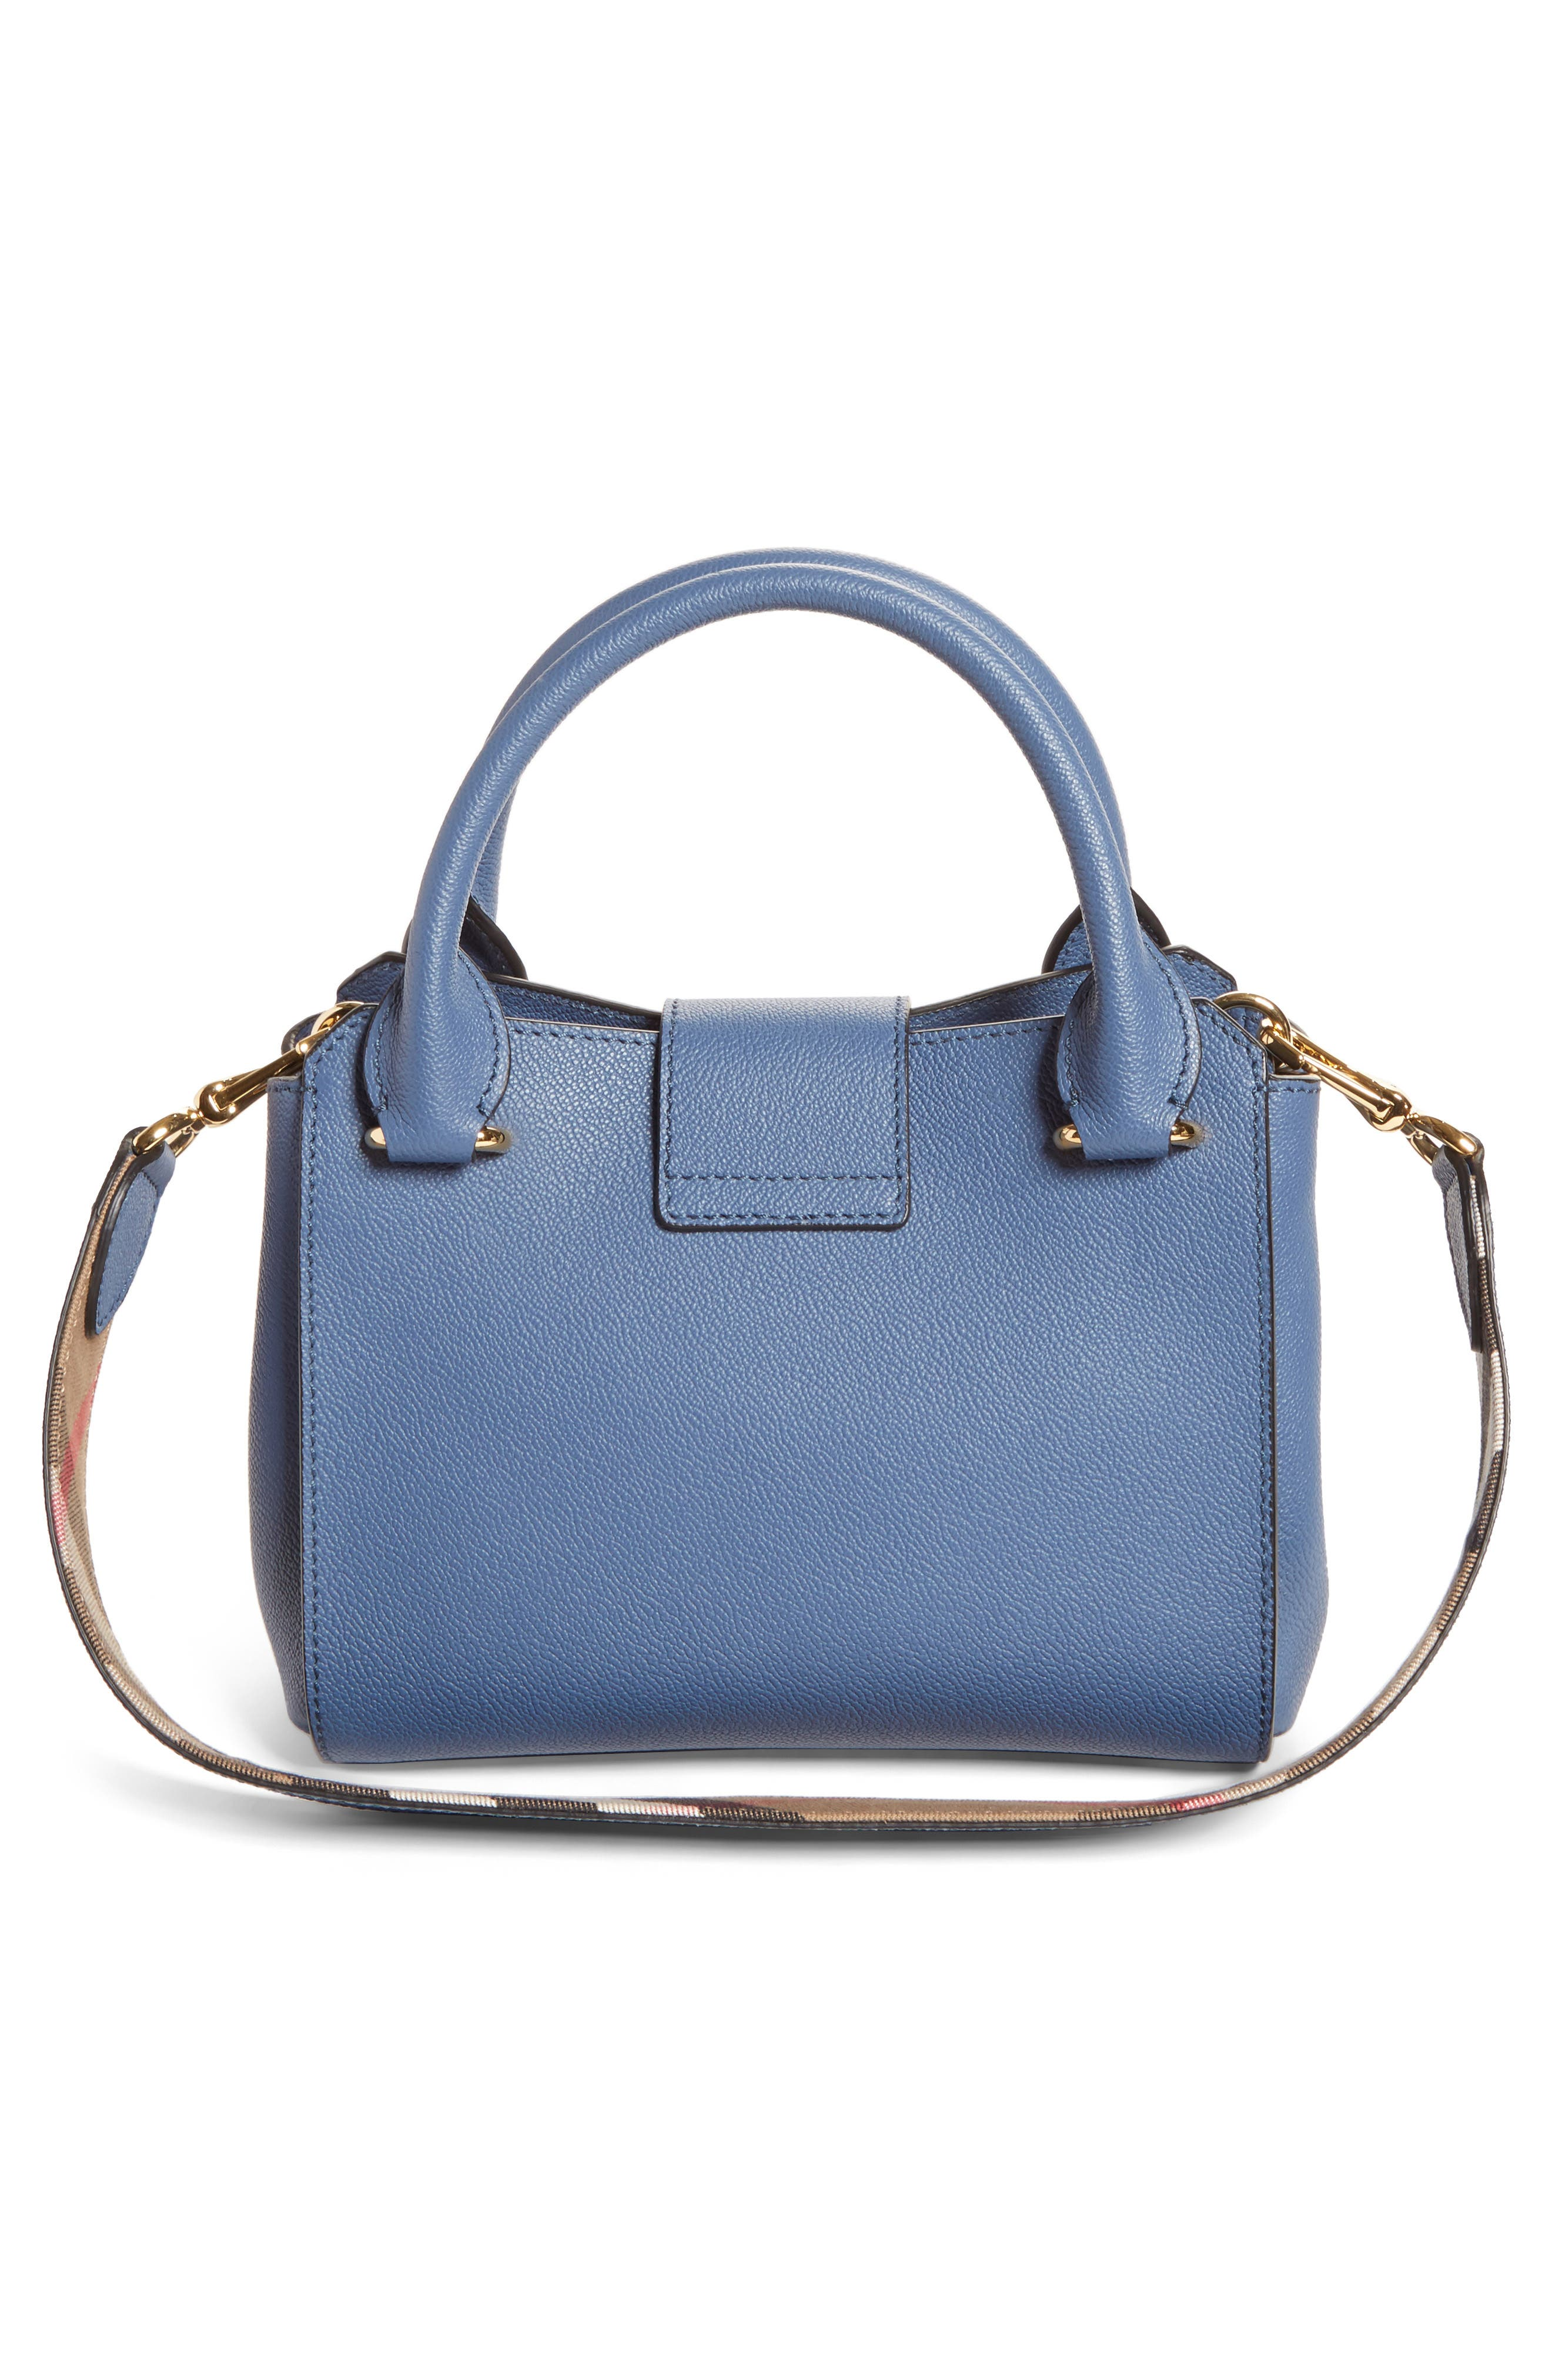 Small Buckle Leather Satchel,                             Alternate thumbnail 3, color,                             Steel Blue